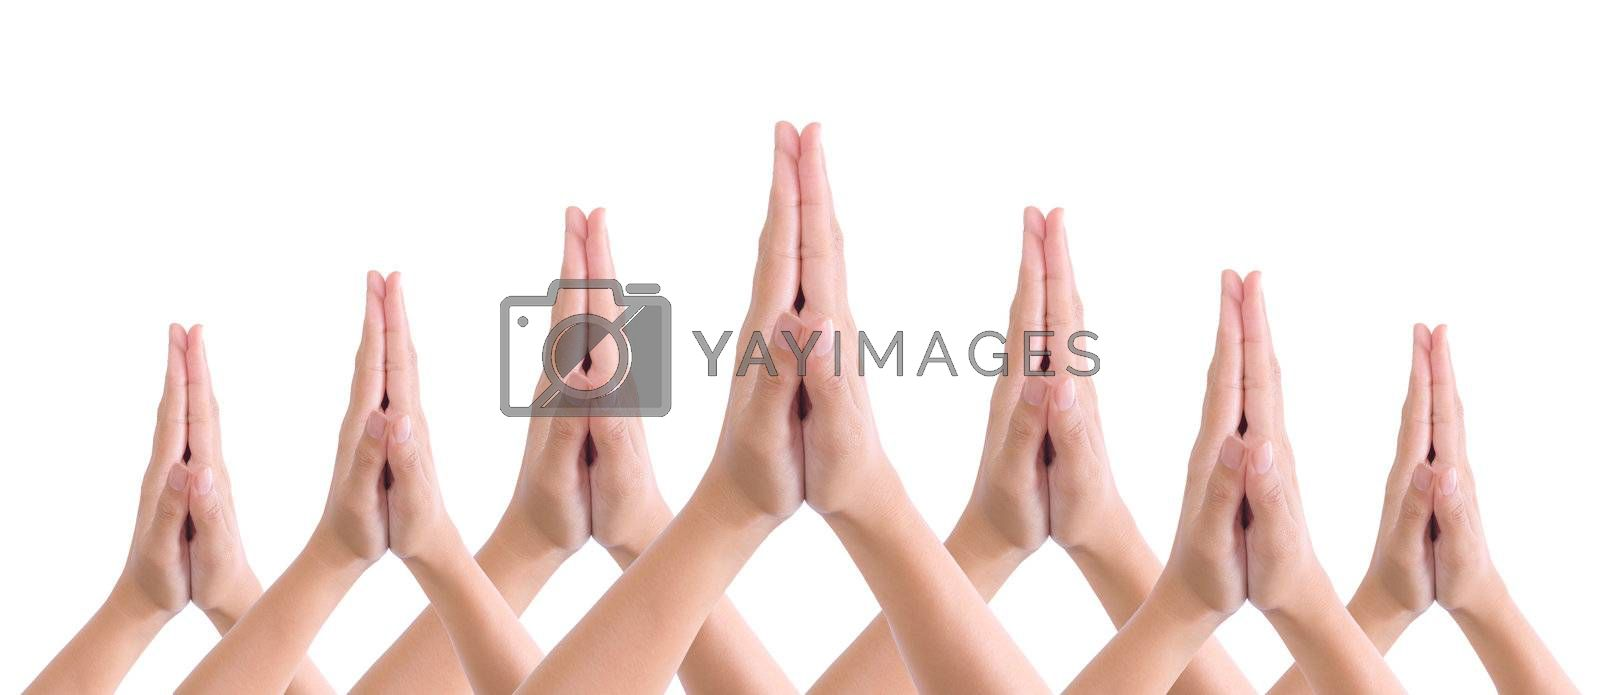 put hands together in salute